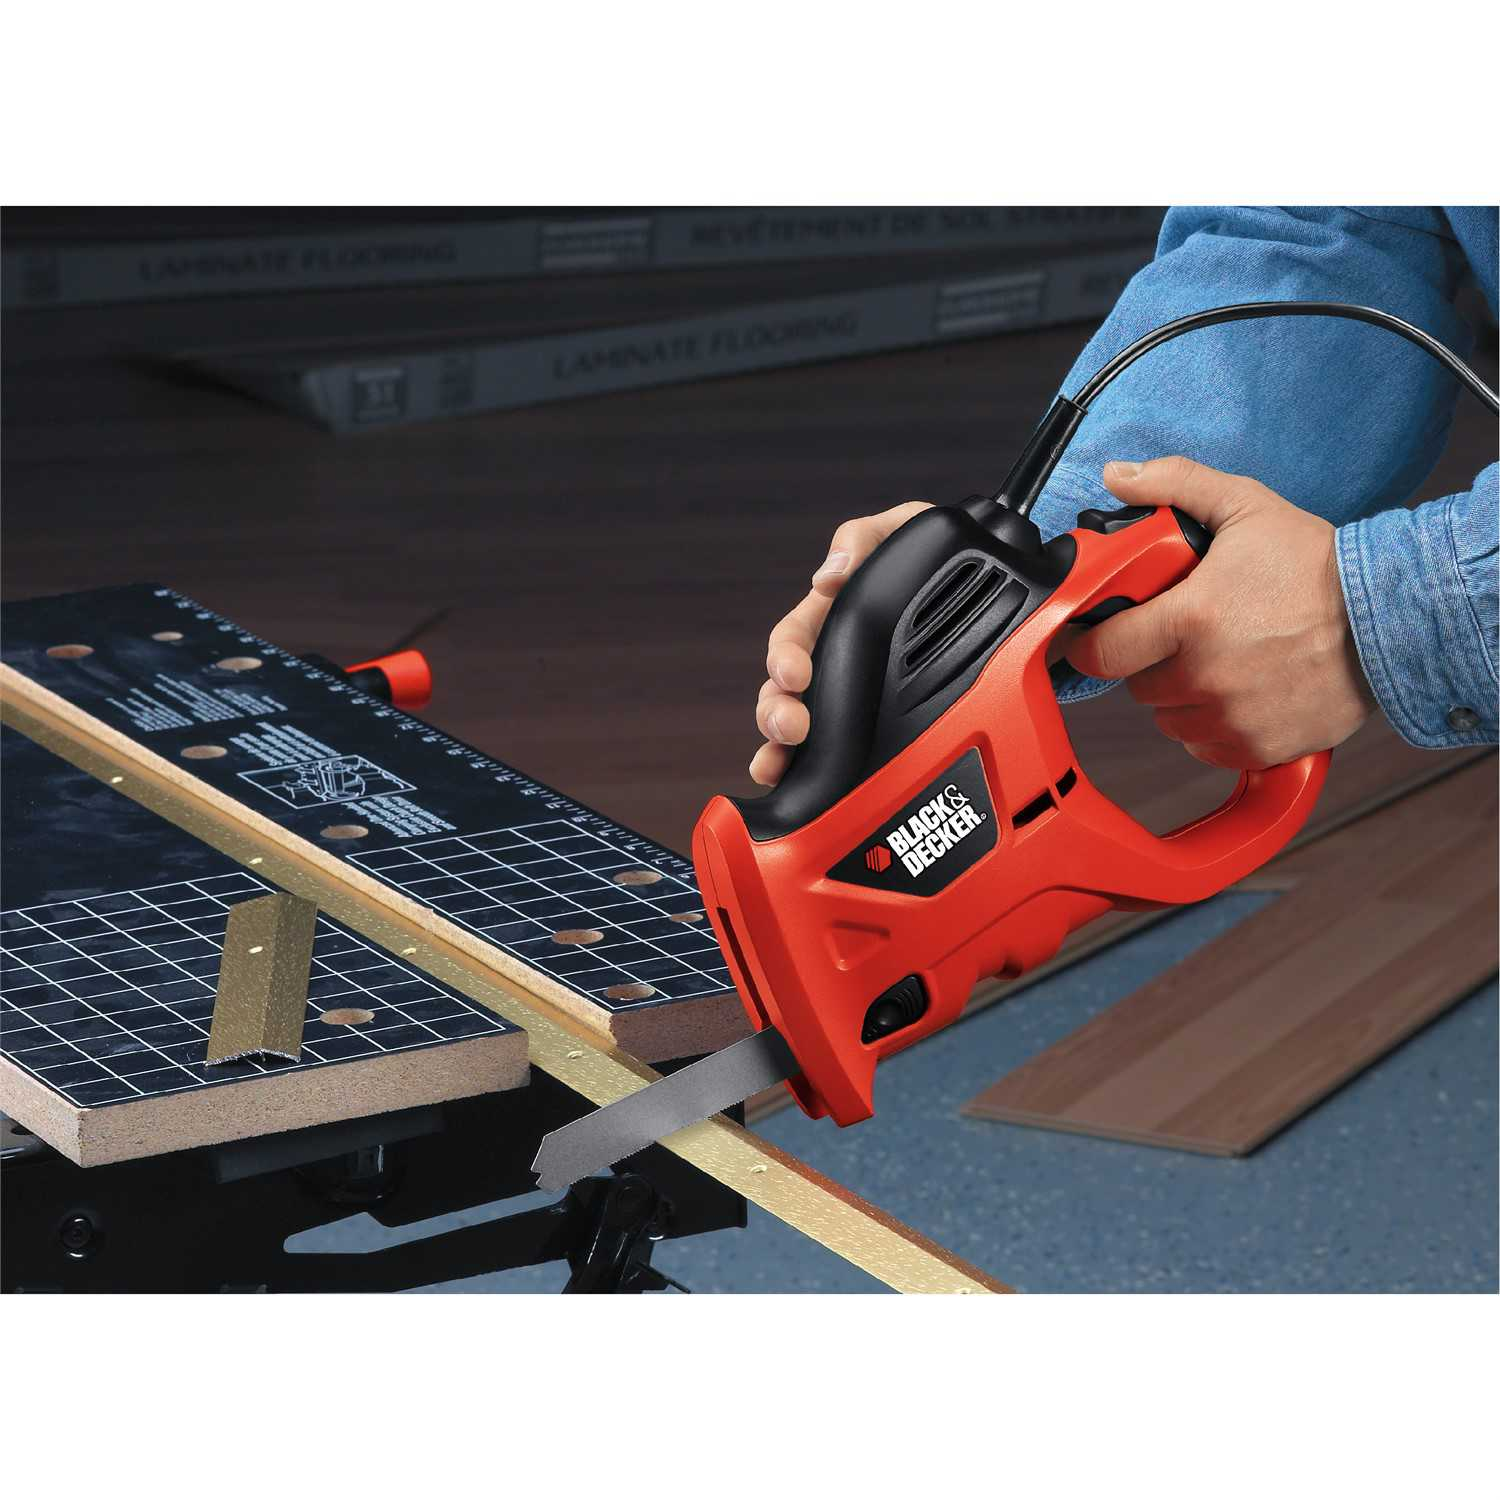 BLACK+DECKER PHS550B 3.4 Amp Powered Hand Saw